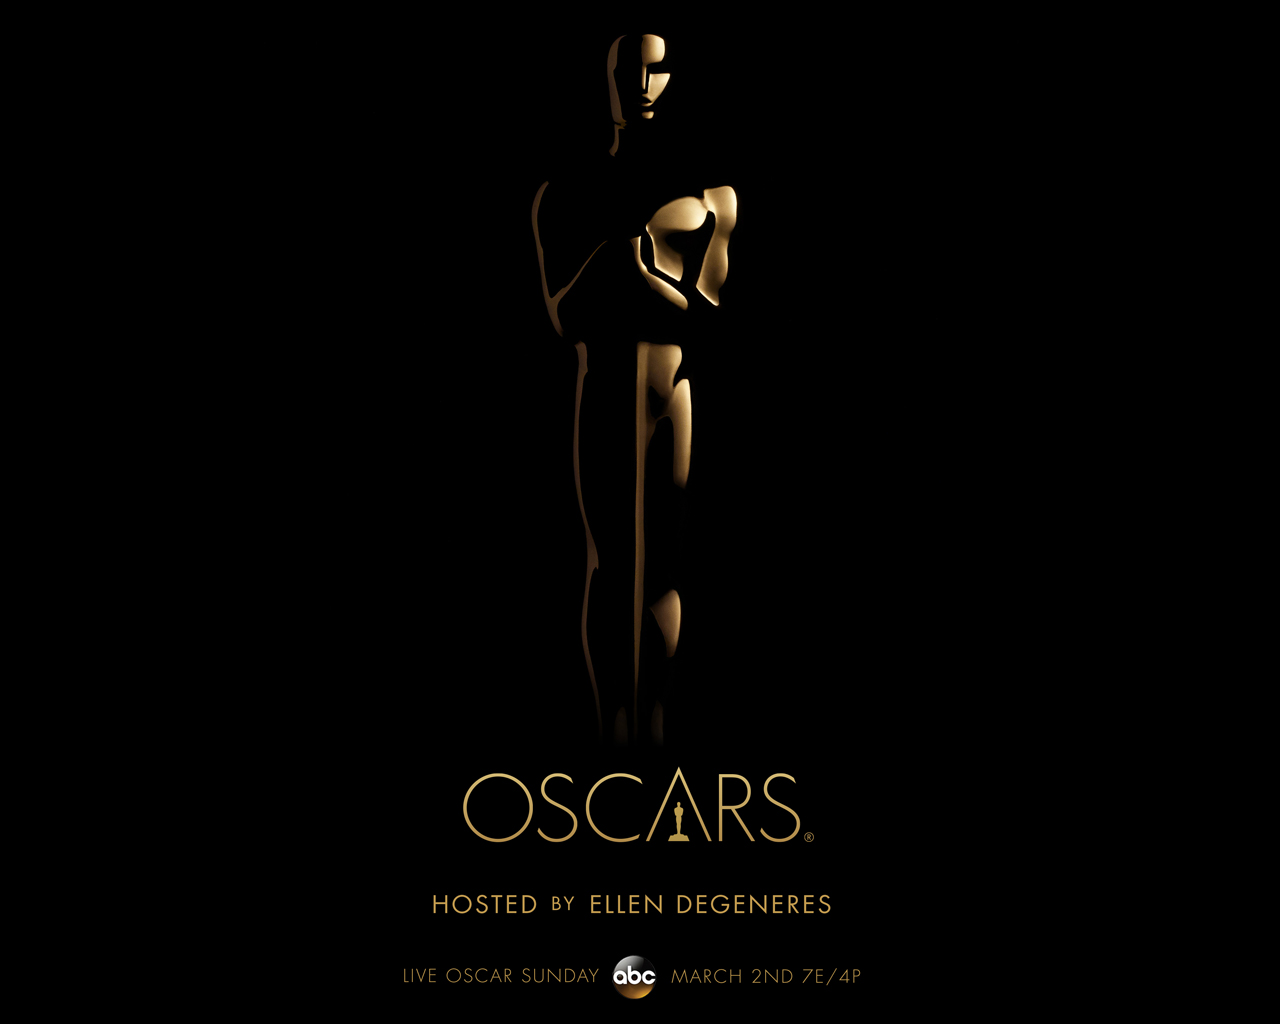 85th Annual Academy Awards Poster